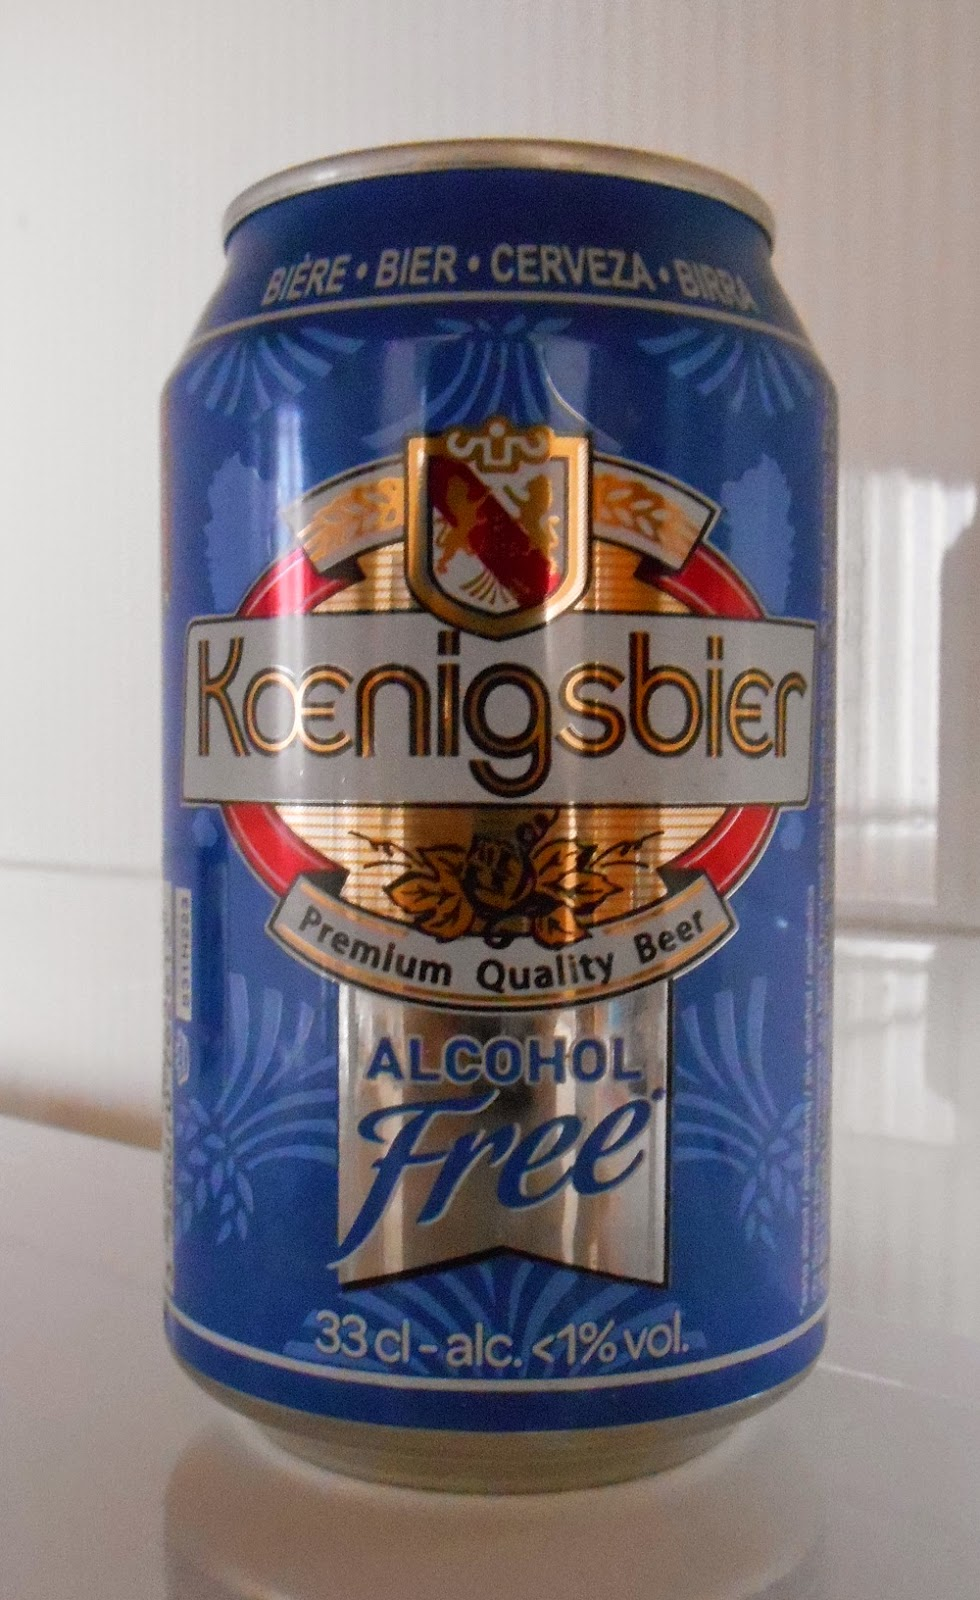 Koenigsbier alcohol free beer